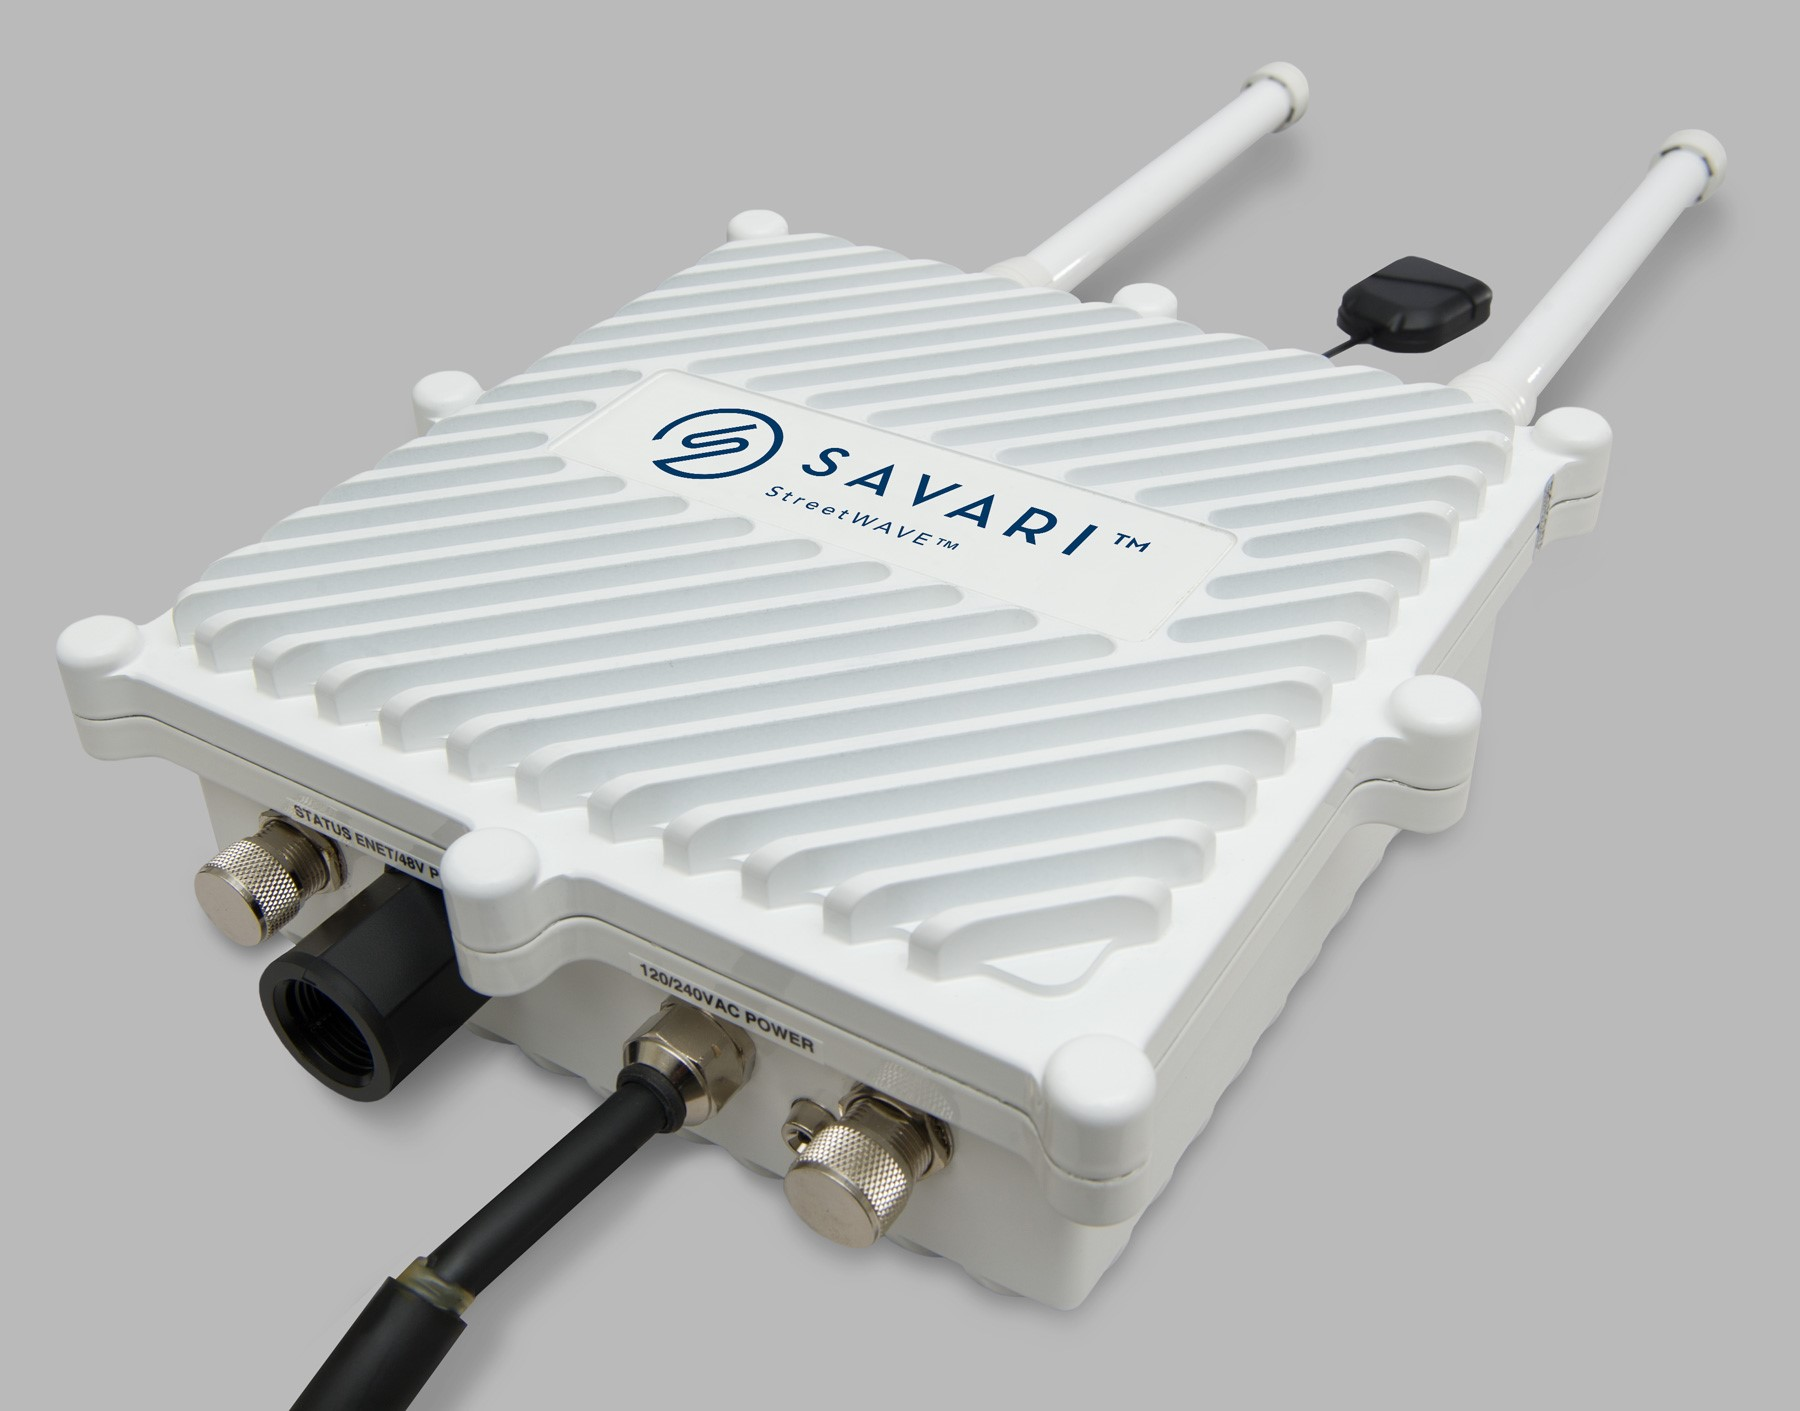 Savari Launches Next Gen V2x Solutions To Accelerate